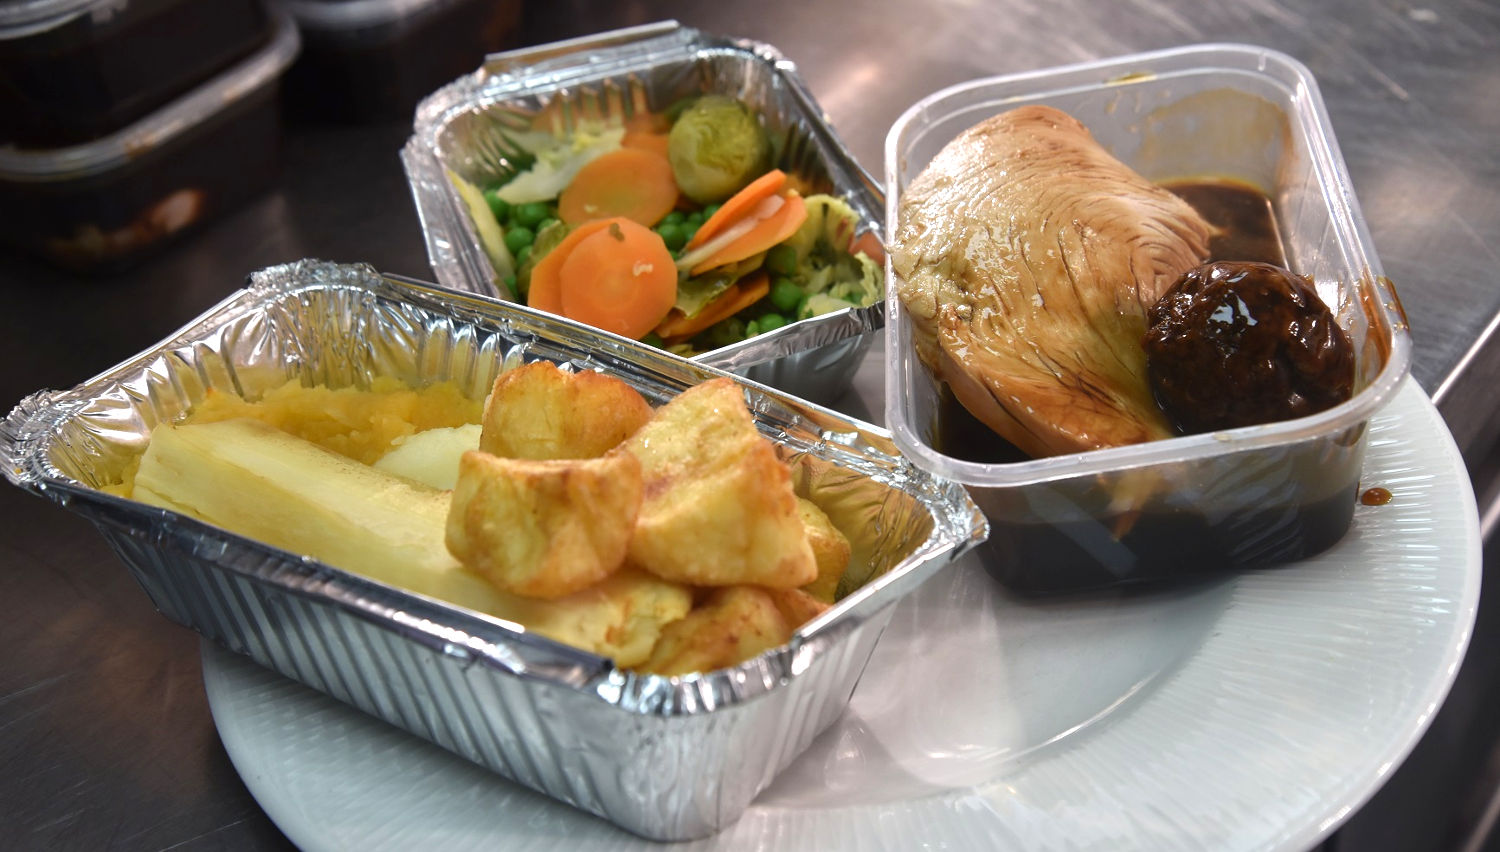 Photo of the special Christmas dinner from the Oven